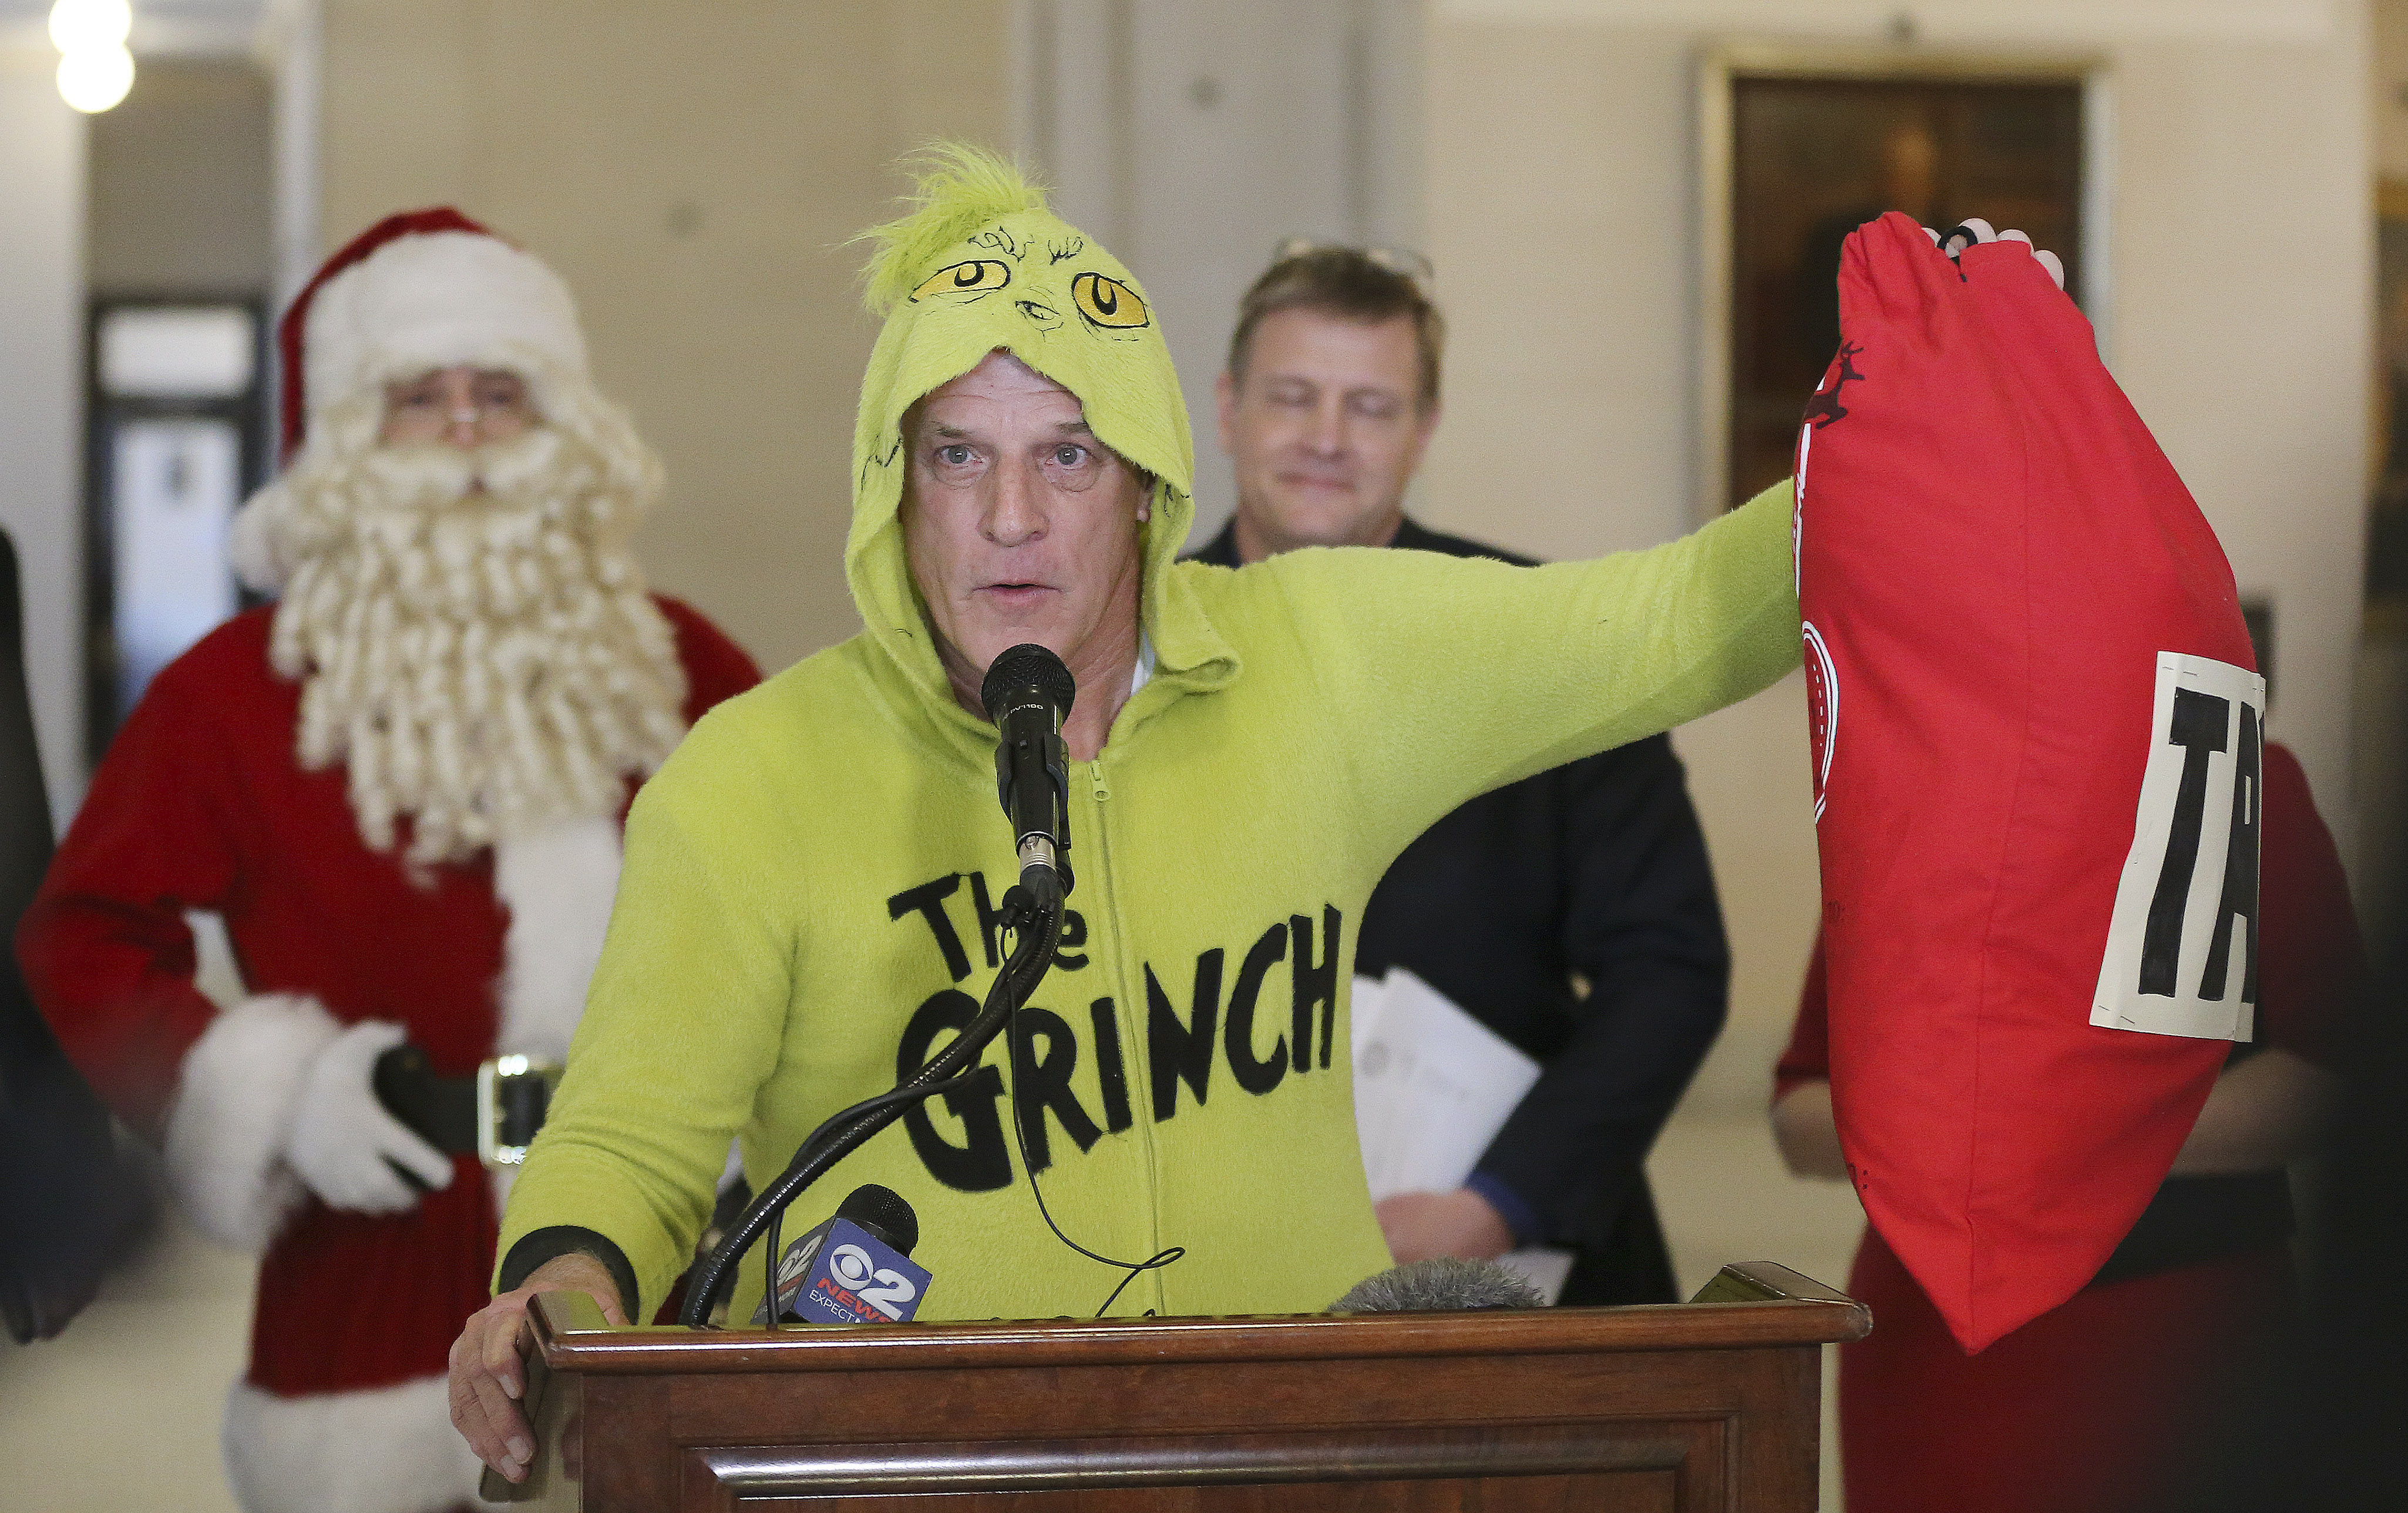 Greg Zenger, dressed as the Grinch, speaks during a press conference about tax reform at the Capitol in Salt Lake City on Friday, Dec. 6, 2019.